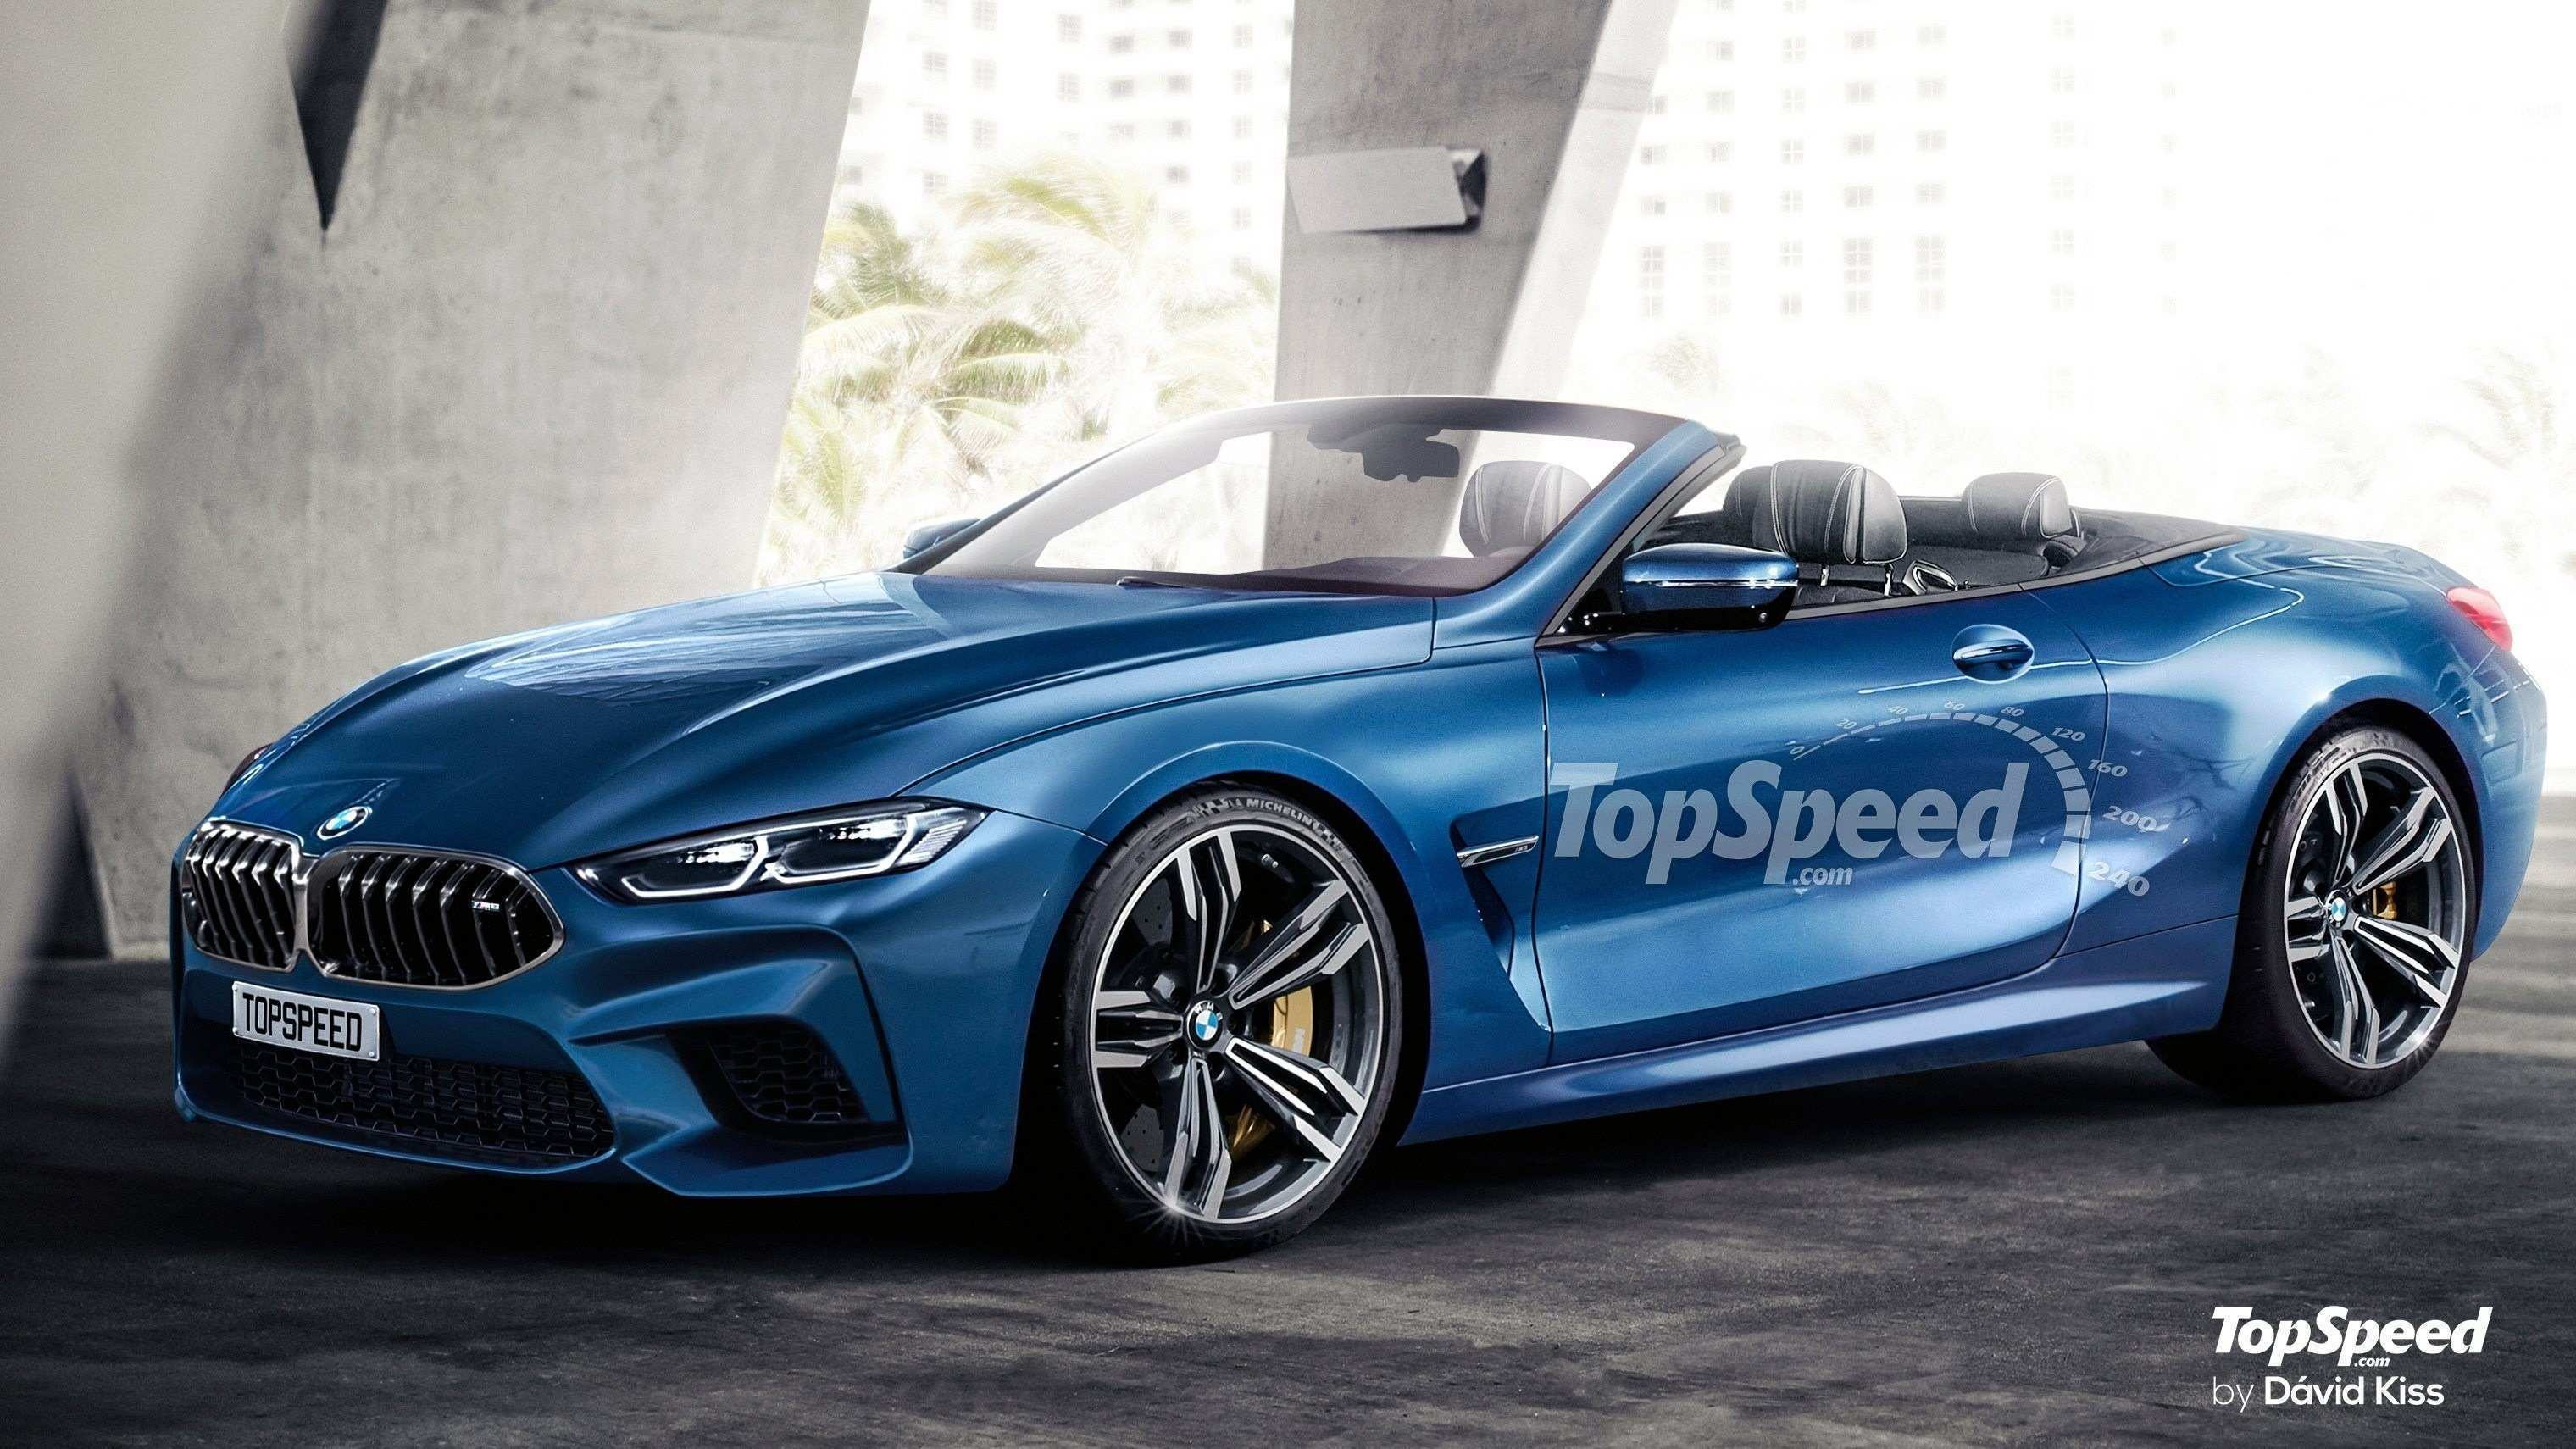 77 Great Upcoming Bmw 2019 Concept Redesign And Review Spy Shoot with Upcoming Bmw 2019 Concept Redesign And Review